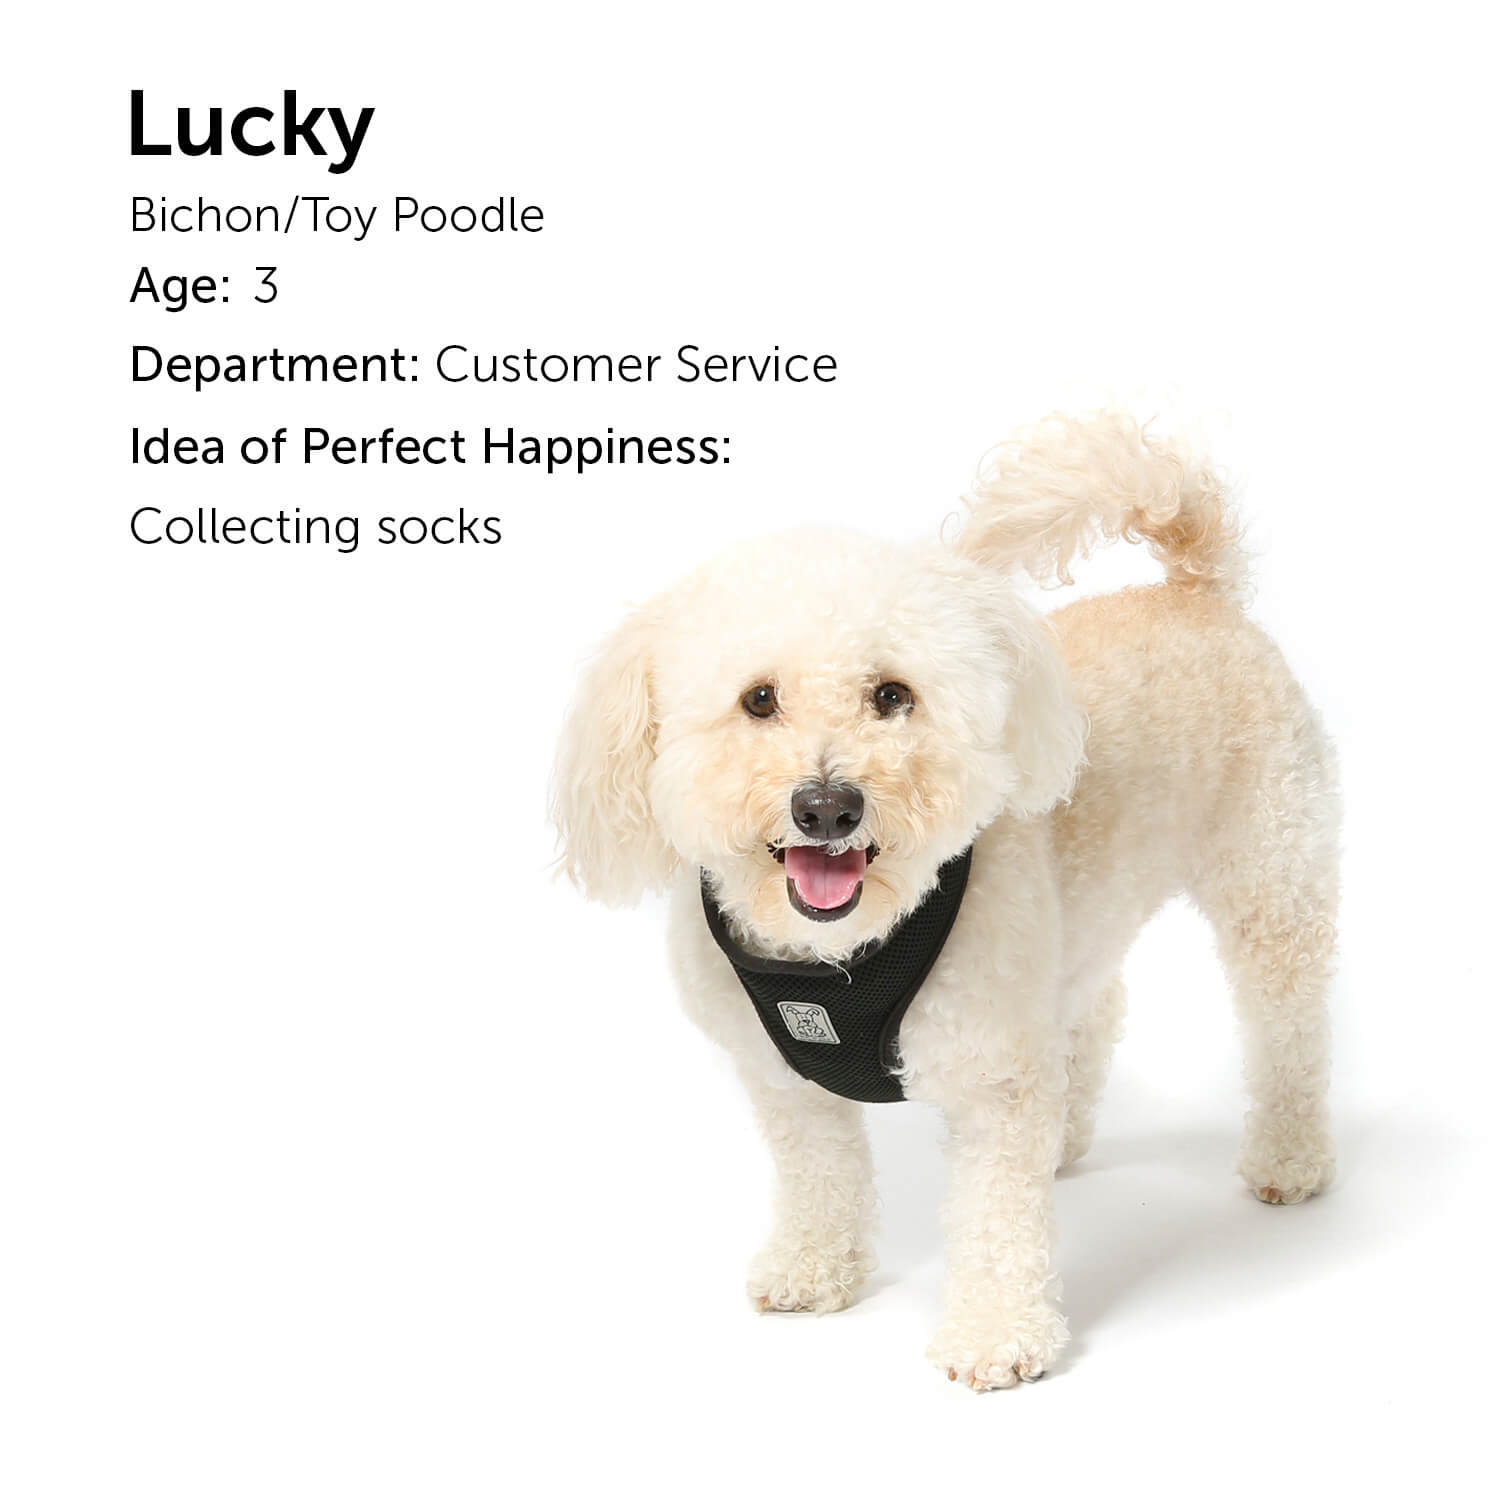 Lucky - Bichon/Toy Poodle